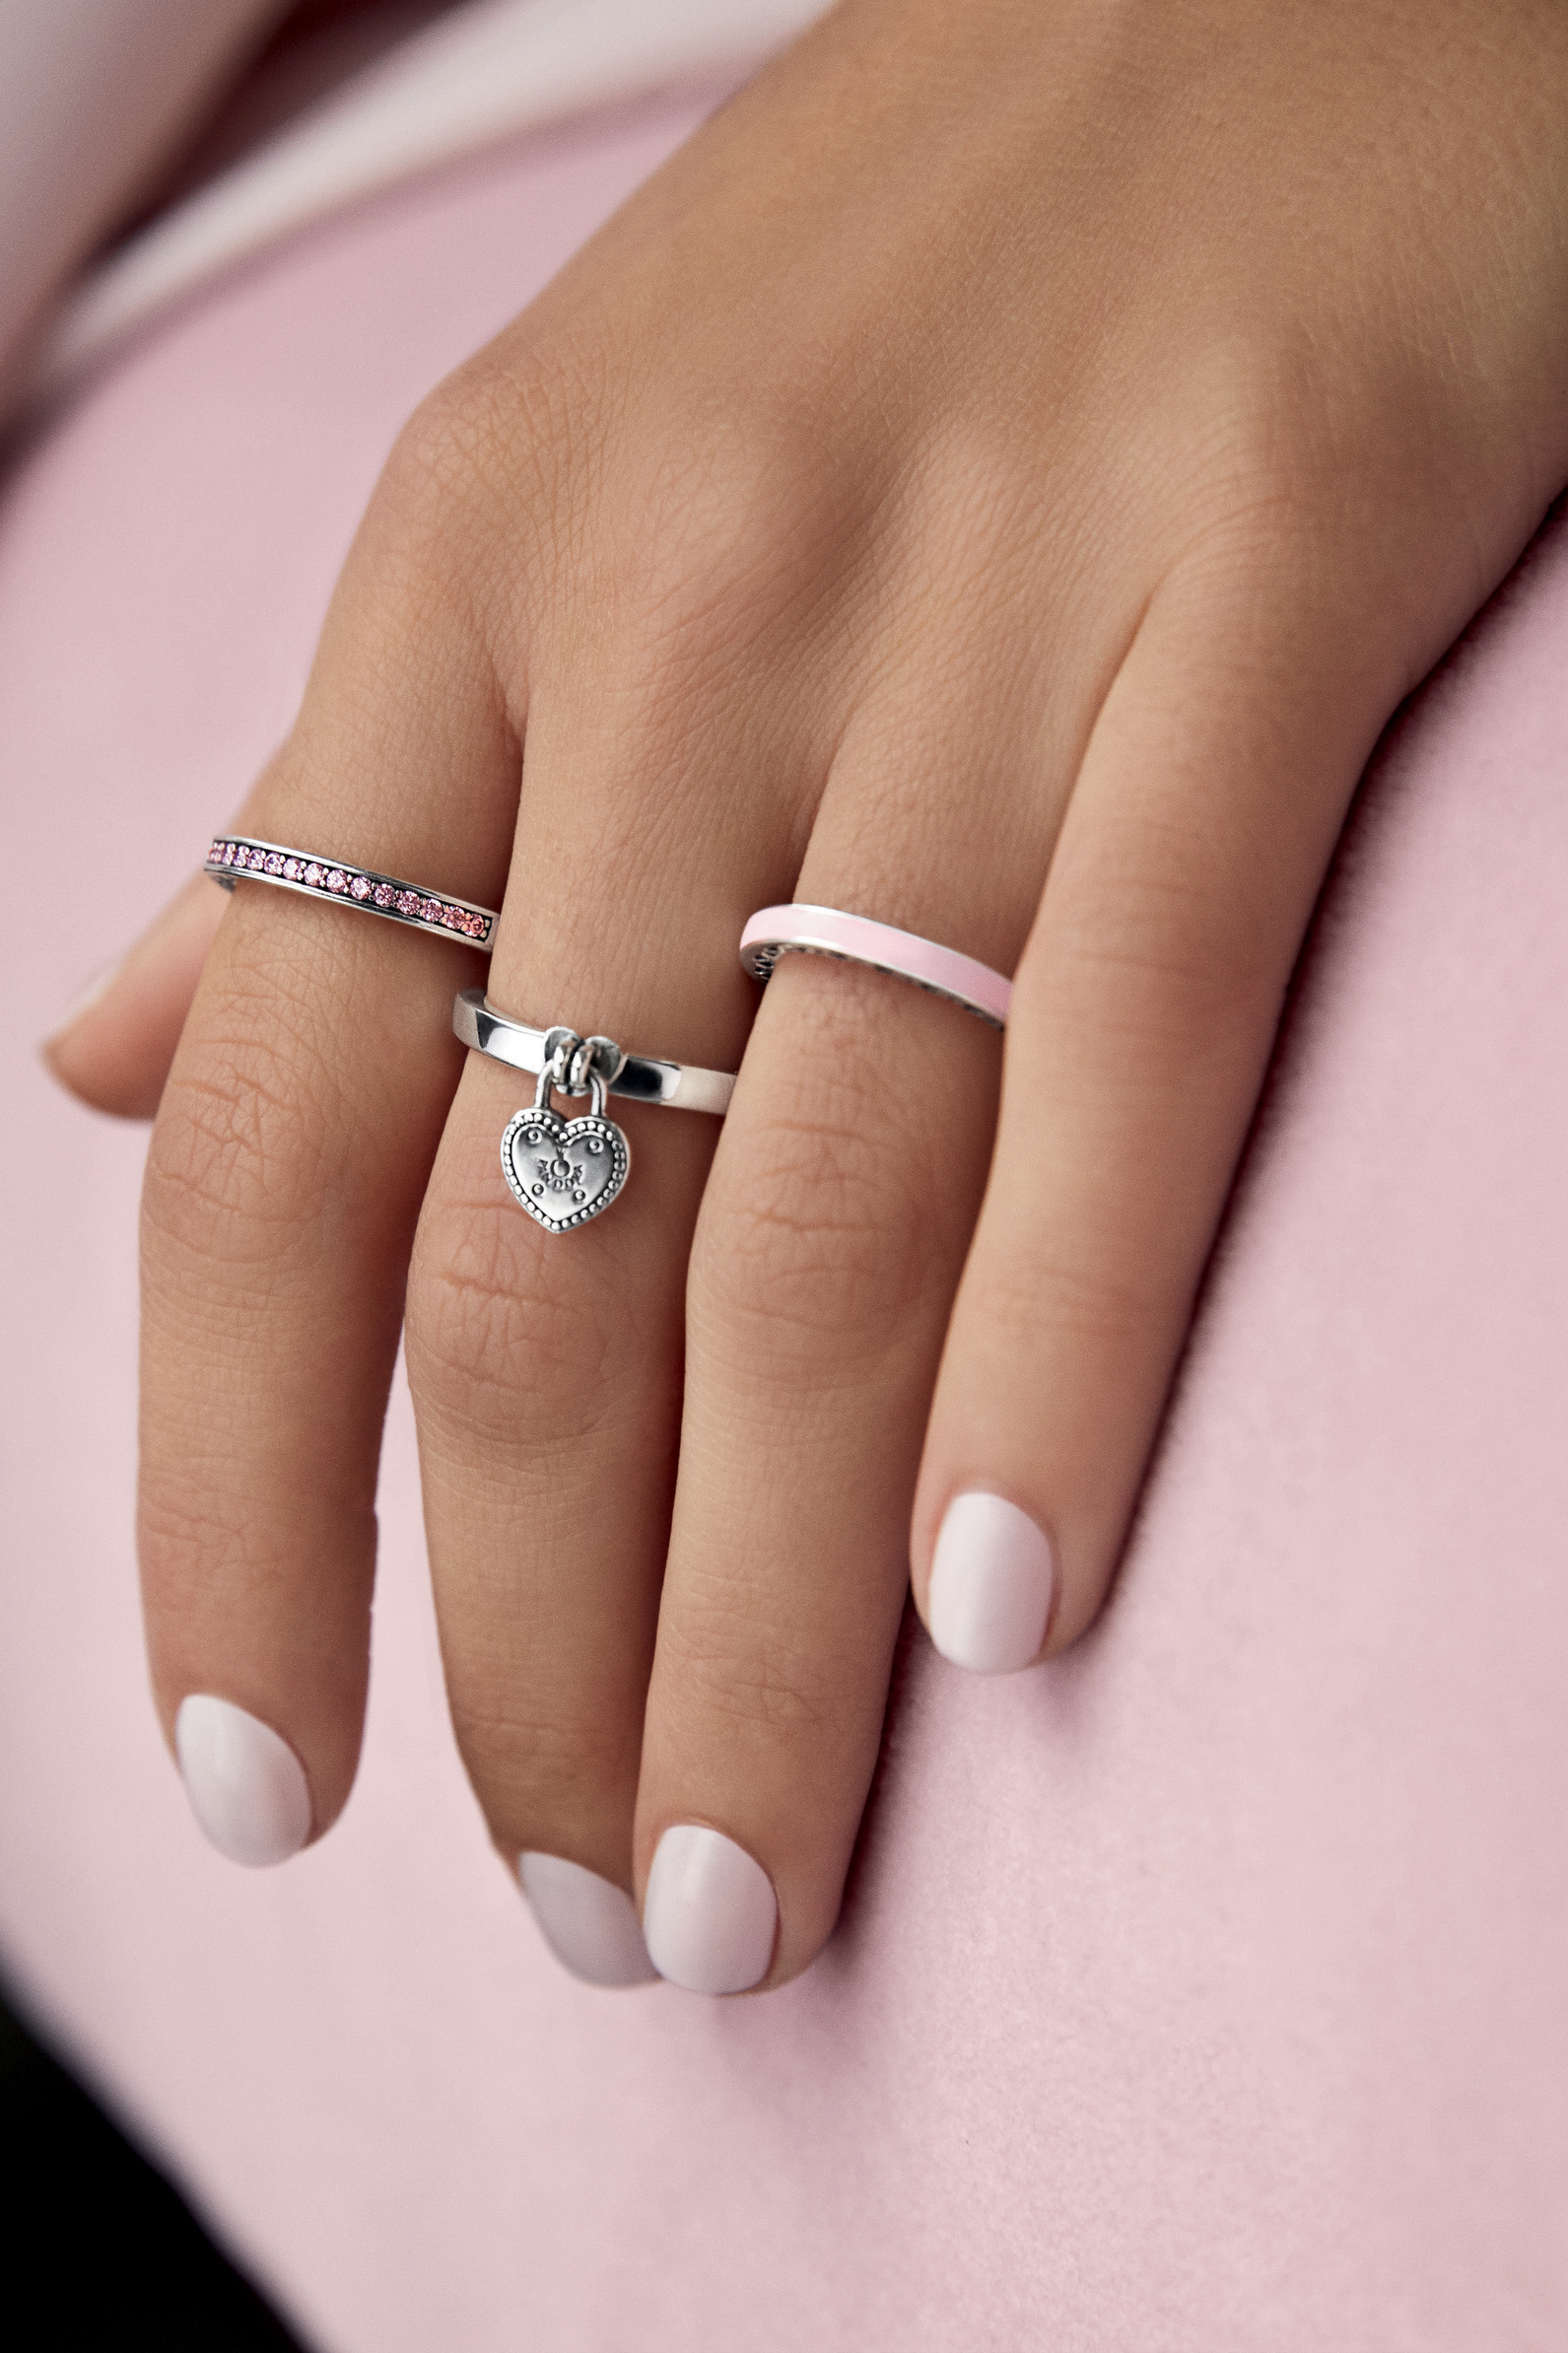 Valentine's Day Jewellery In 2019 | Pandora Rings | Pandora Rings Inside Most Recently Released Heart Shaped Padlock Rings (View 4 of 25)